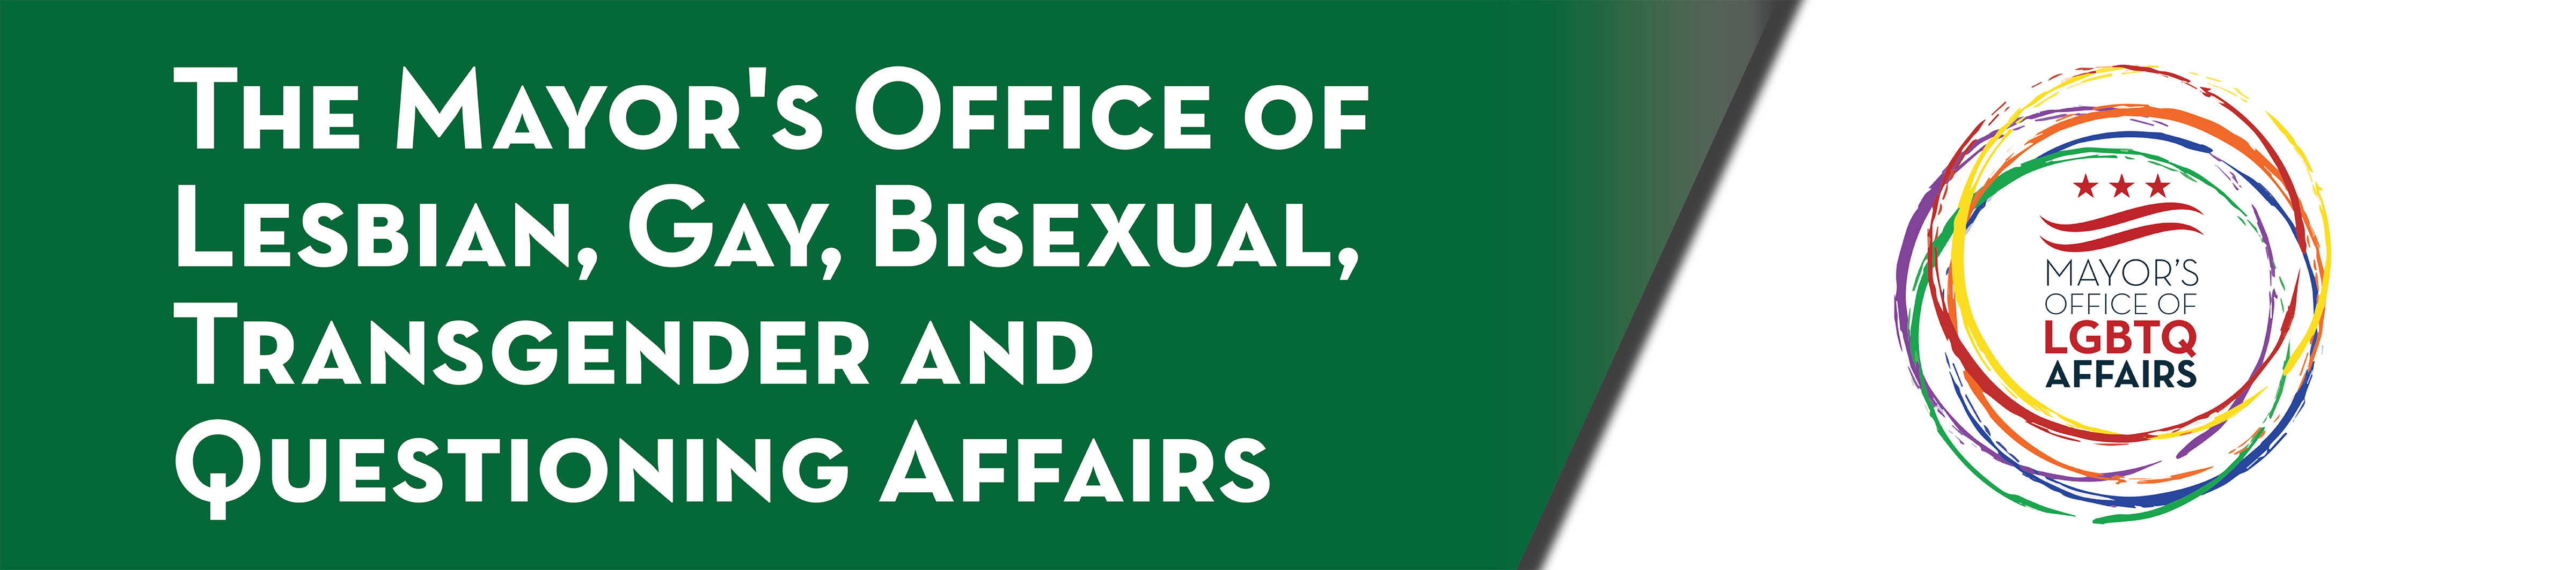 Mayor's Office of Lesbian, Gay, Bisexual, Transgender and Questioning Affairs